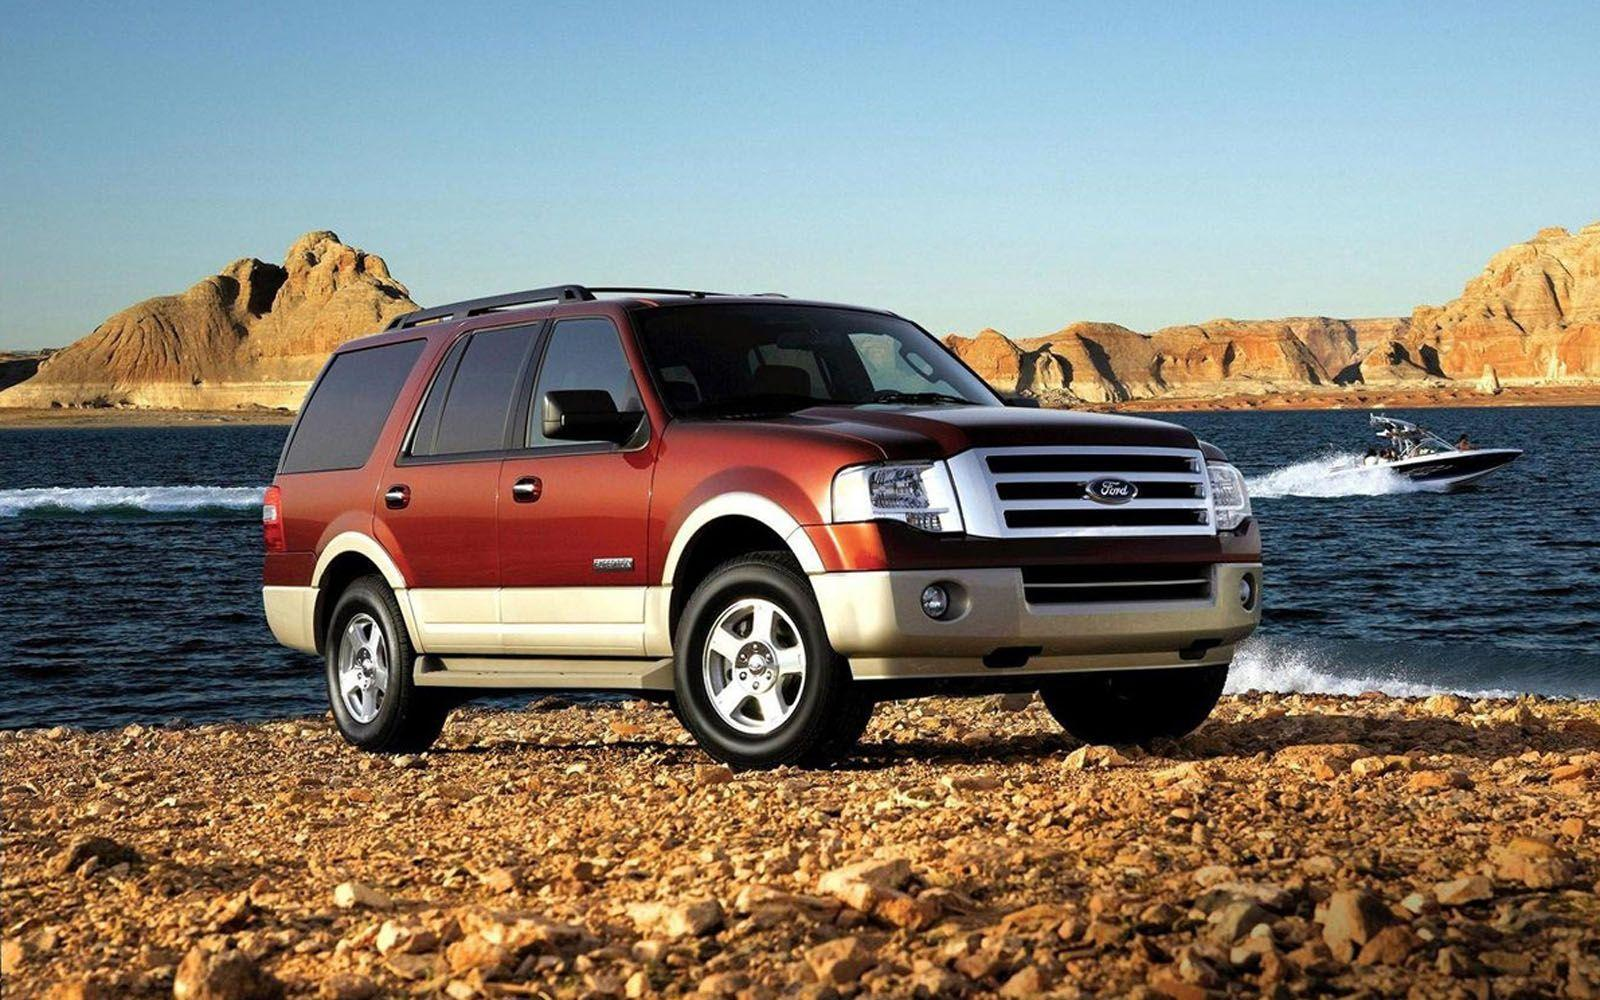 Ford Expedition SUV Car Wallpapers Desktop Wallpaper